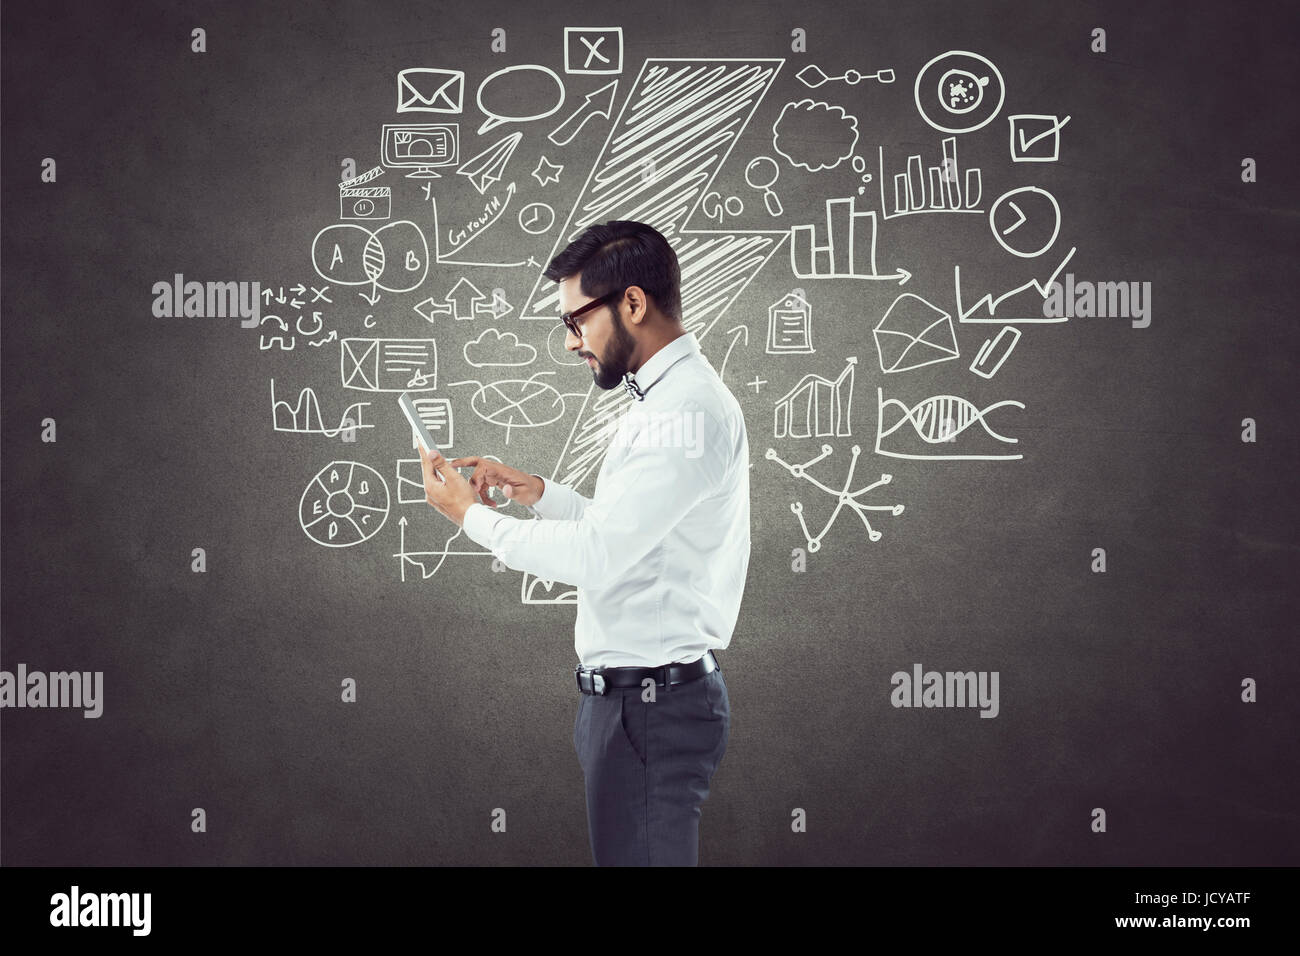 Businessman using digital tablet in front of blackboard with icons - Stock Image